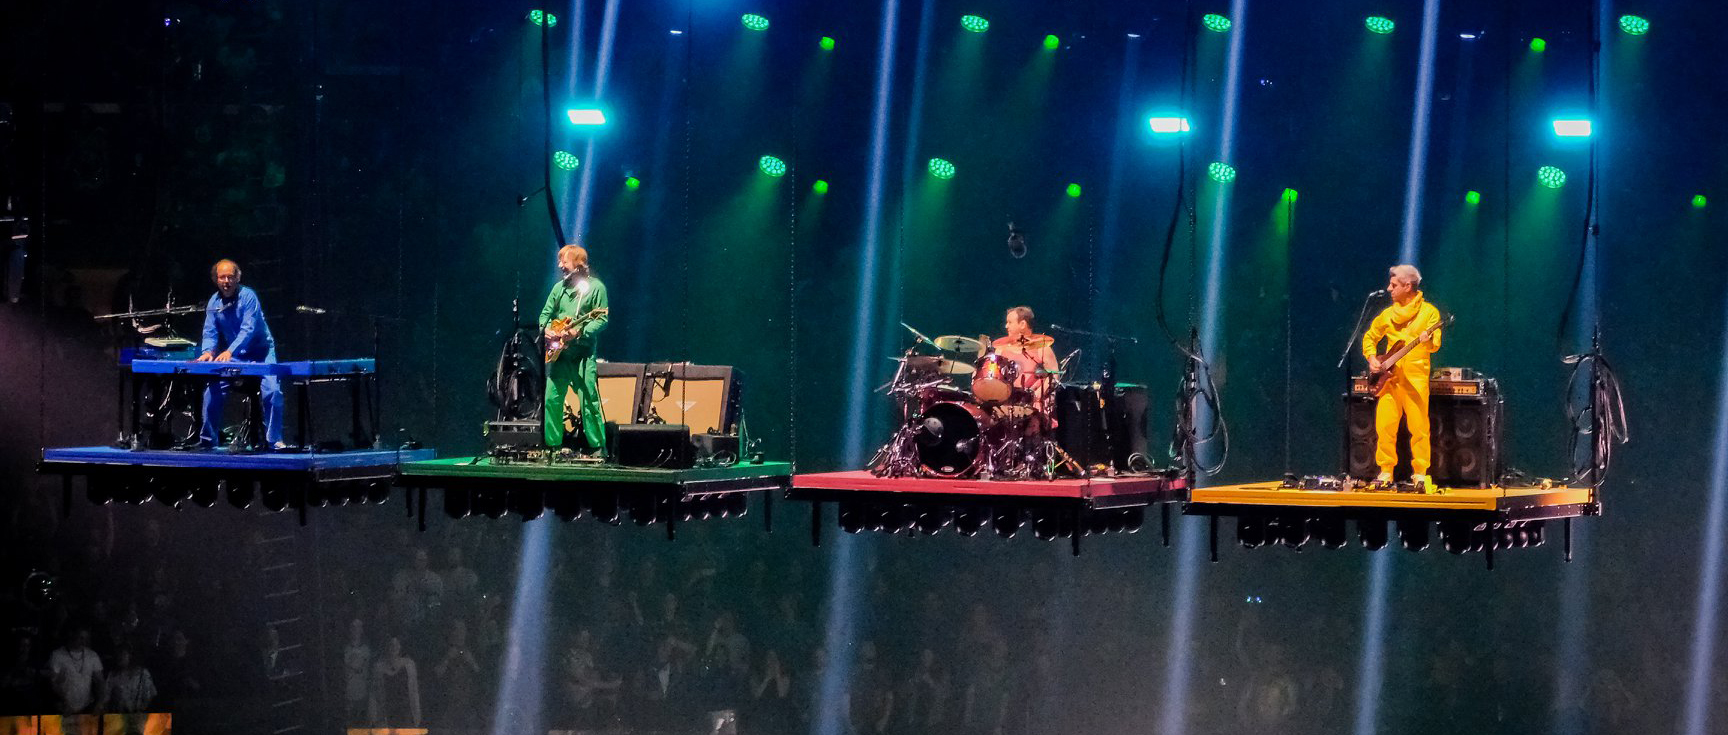 Phish releases New Year's Eve 2019 Gag Video in beautiful 4K/HDR.